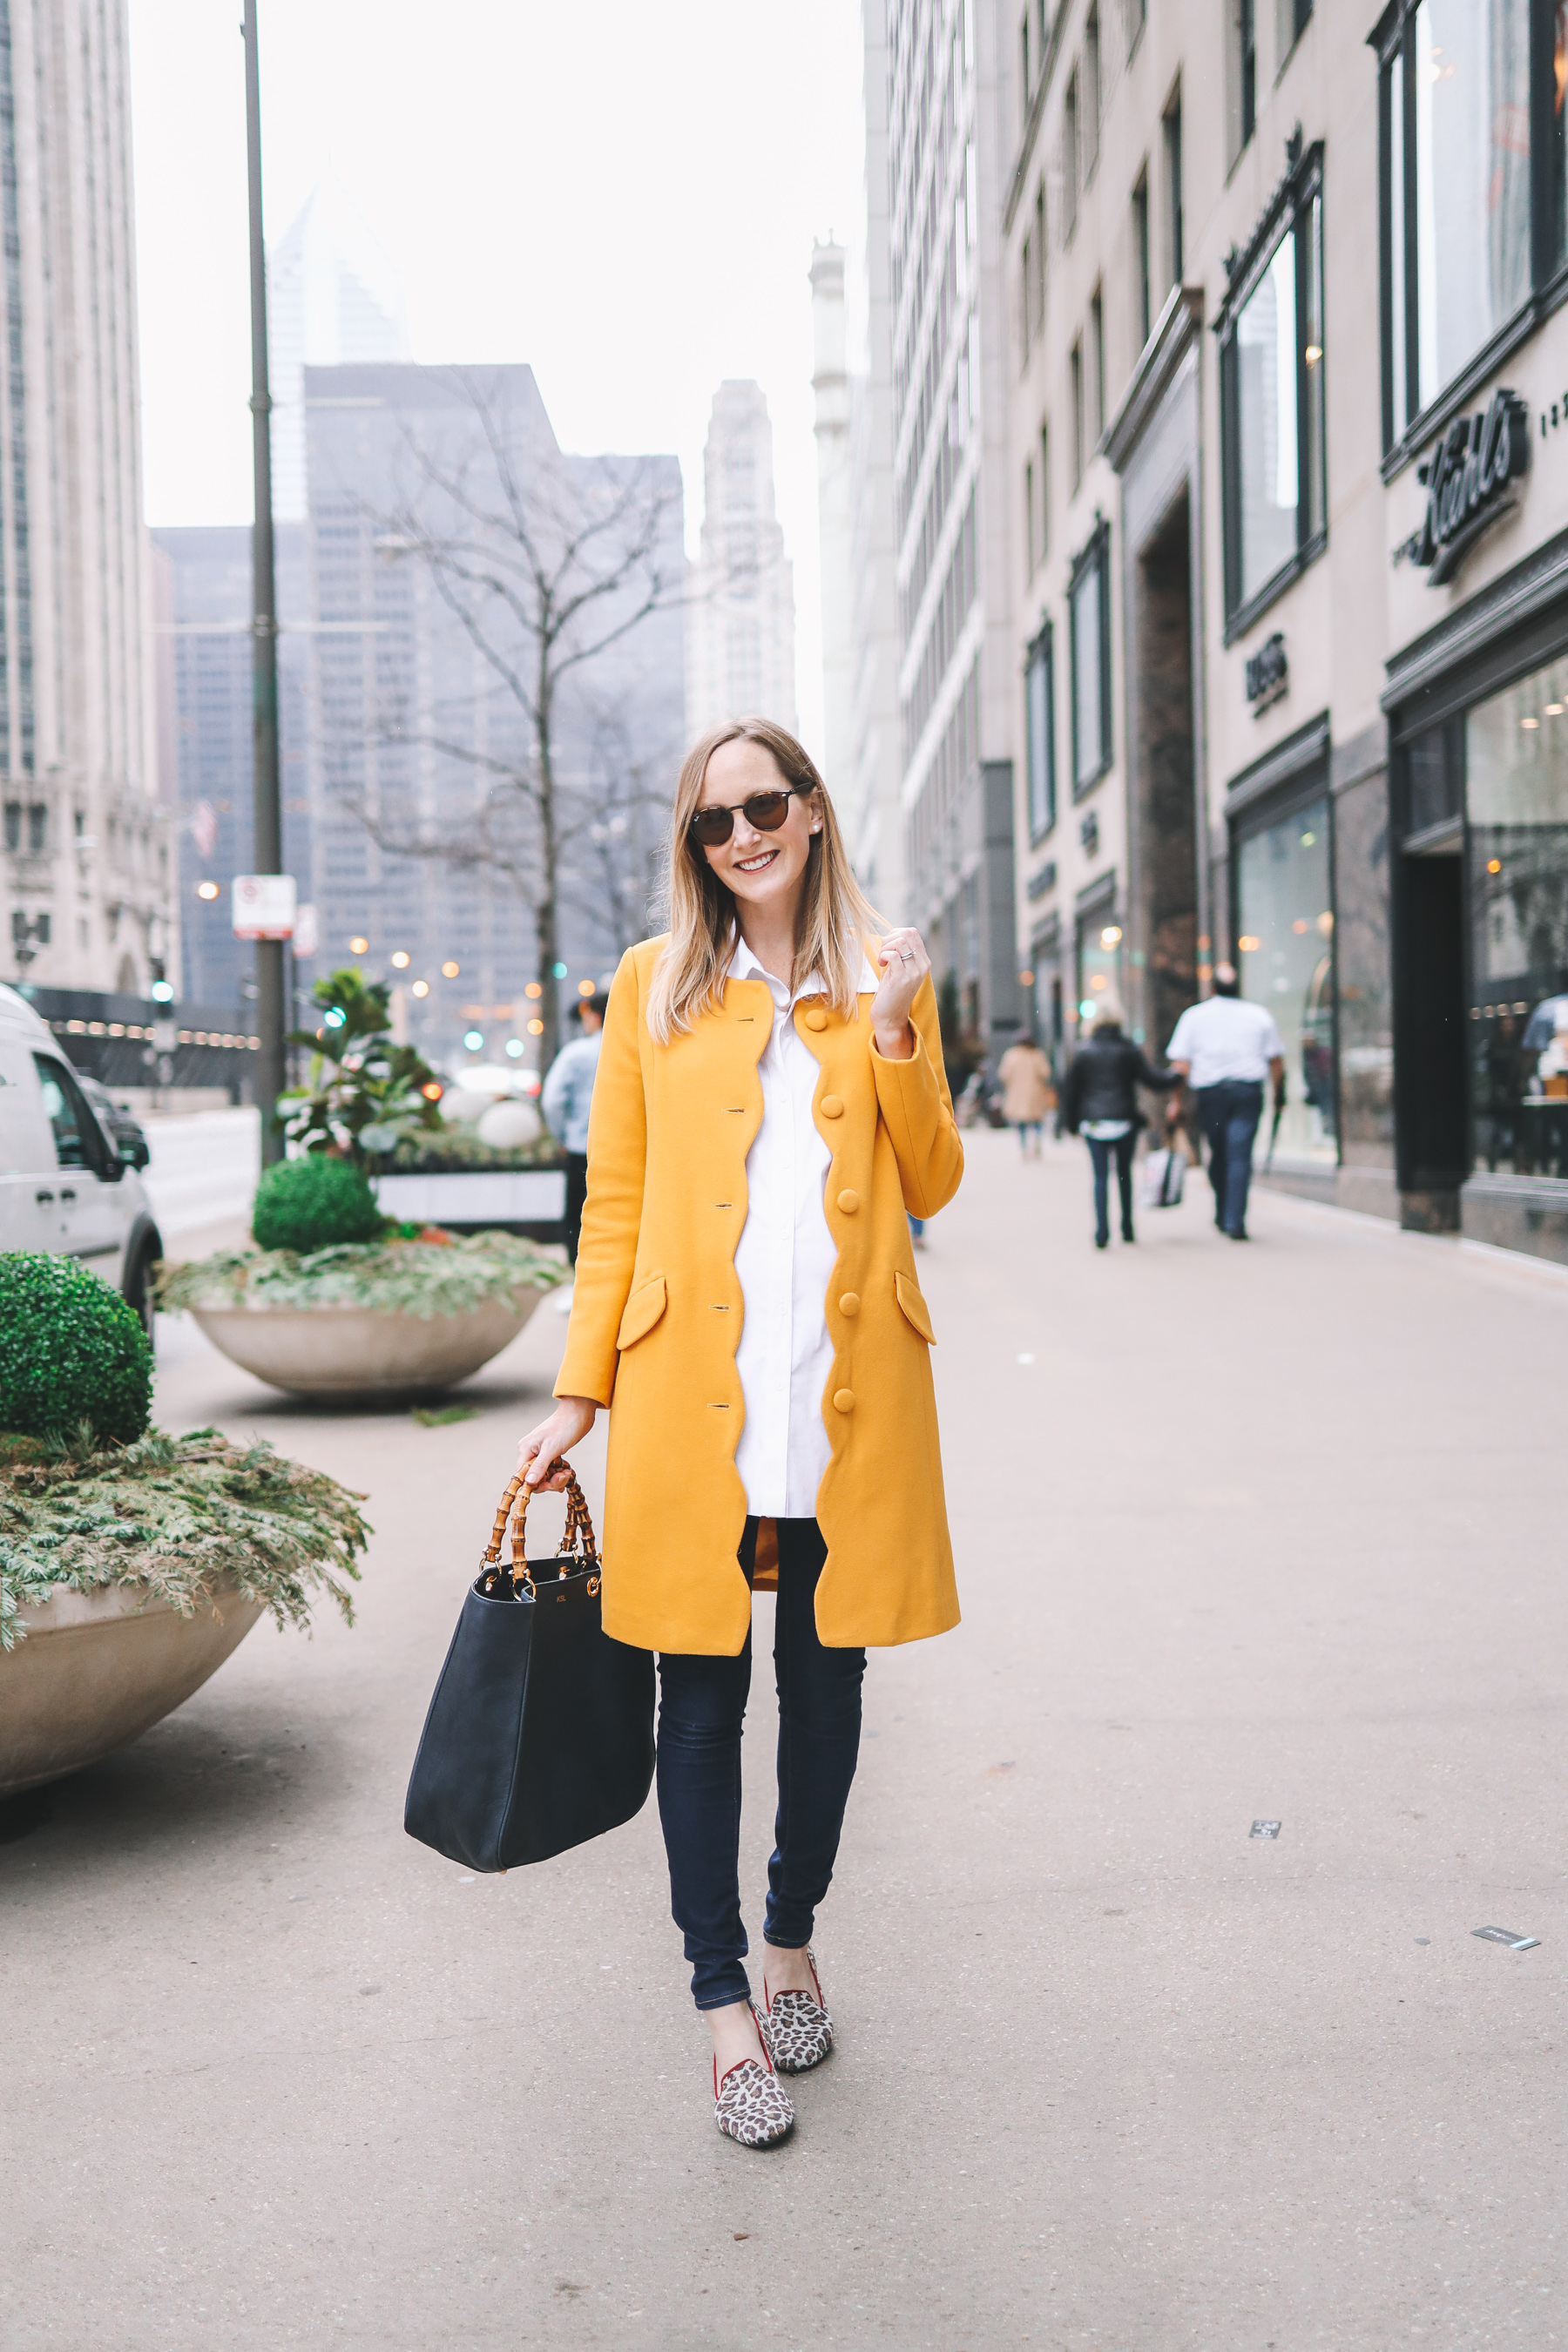 Yellow Scalloped Coat outfit